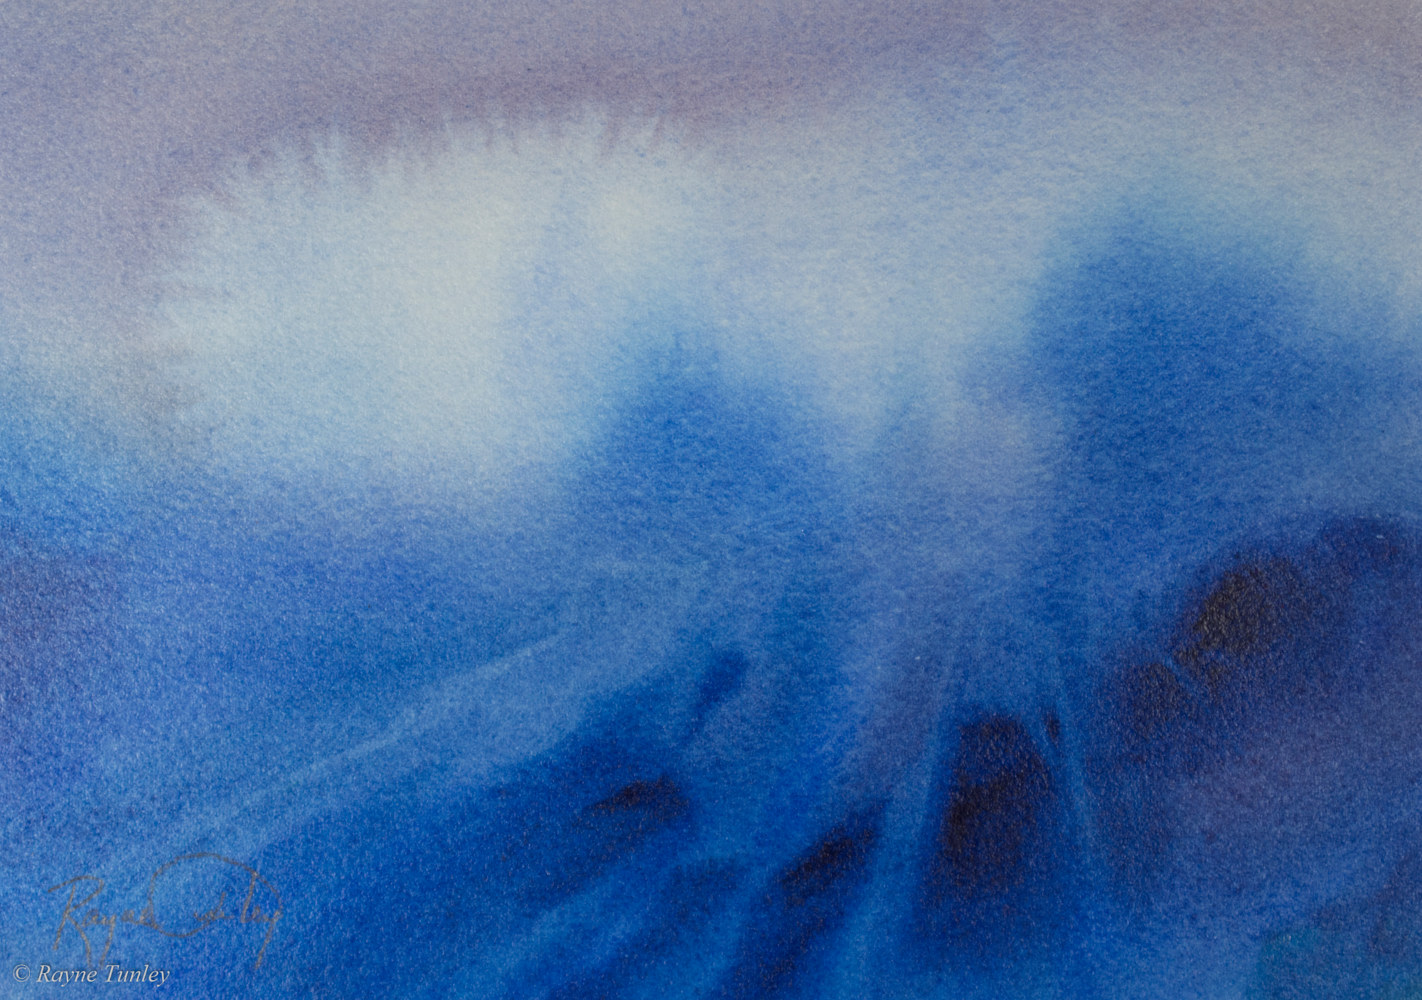 Rayne Tunley, High Tide, 7.5in x 10.5in, watercolour by Rayne Tunley